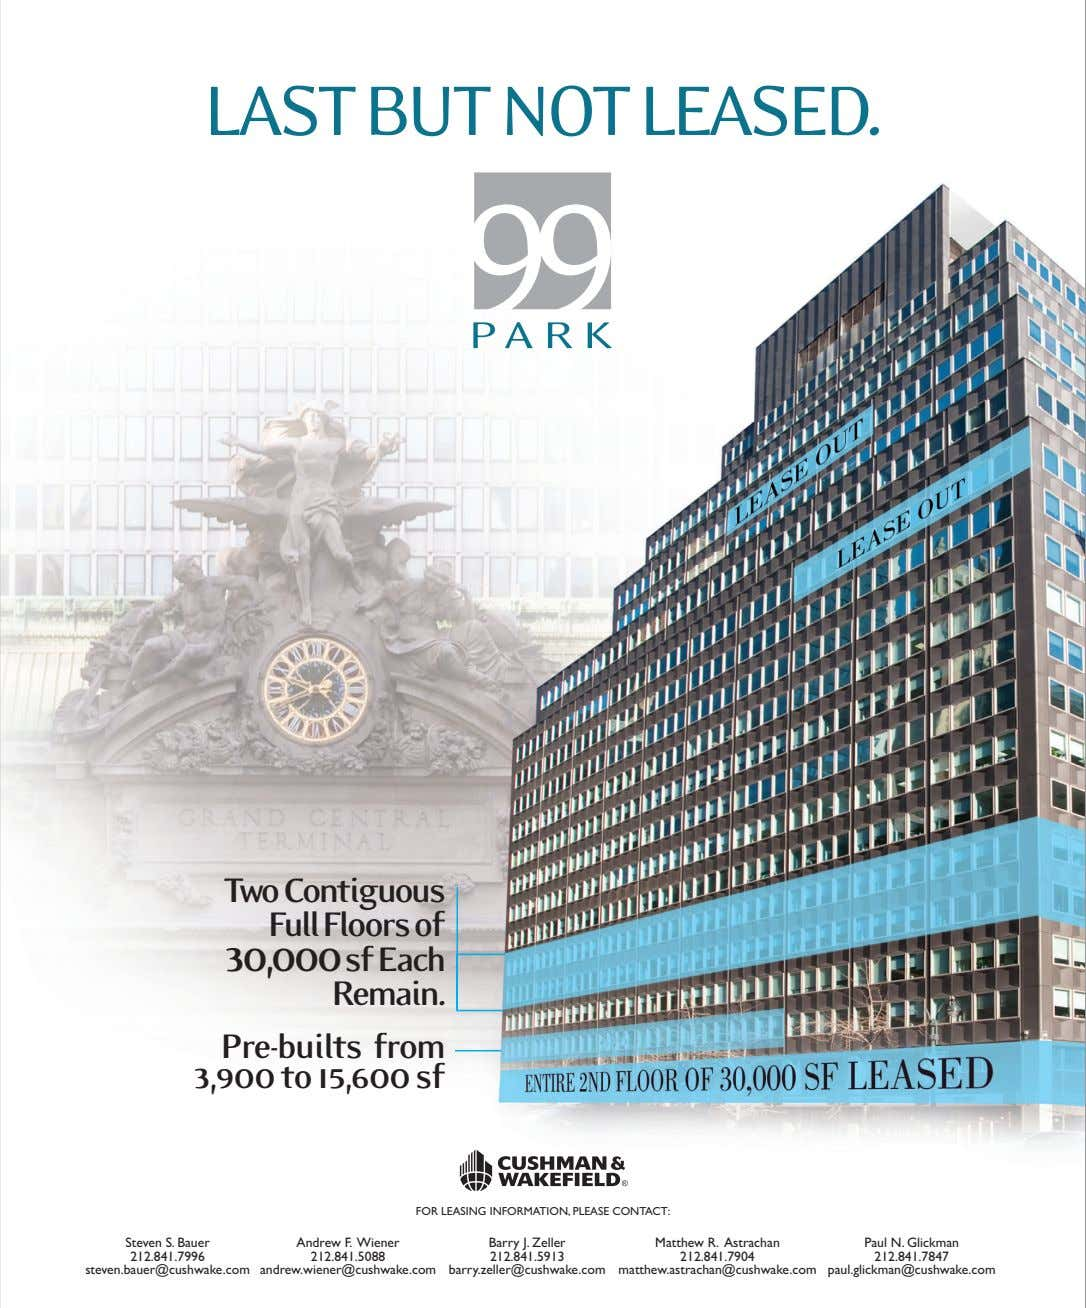 LAST BUT NOT LEASED. Two Contiguous Full Floors of 30,000 sf Each Remain. Pre-builts from